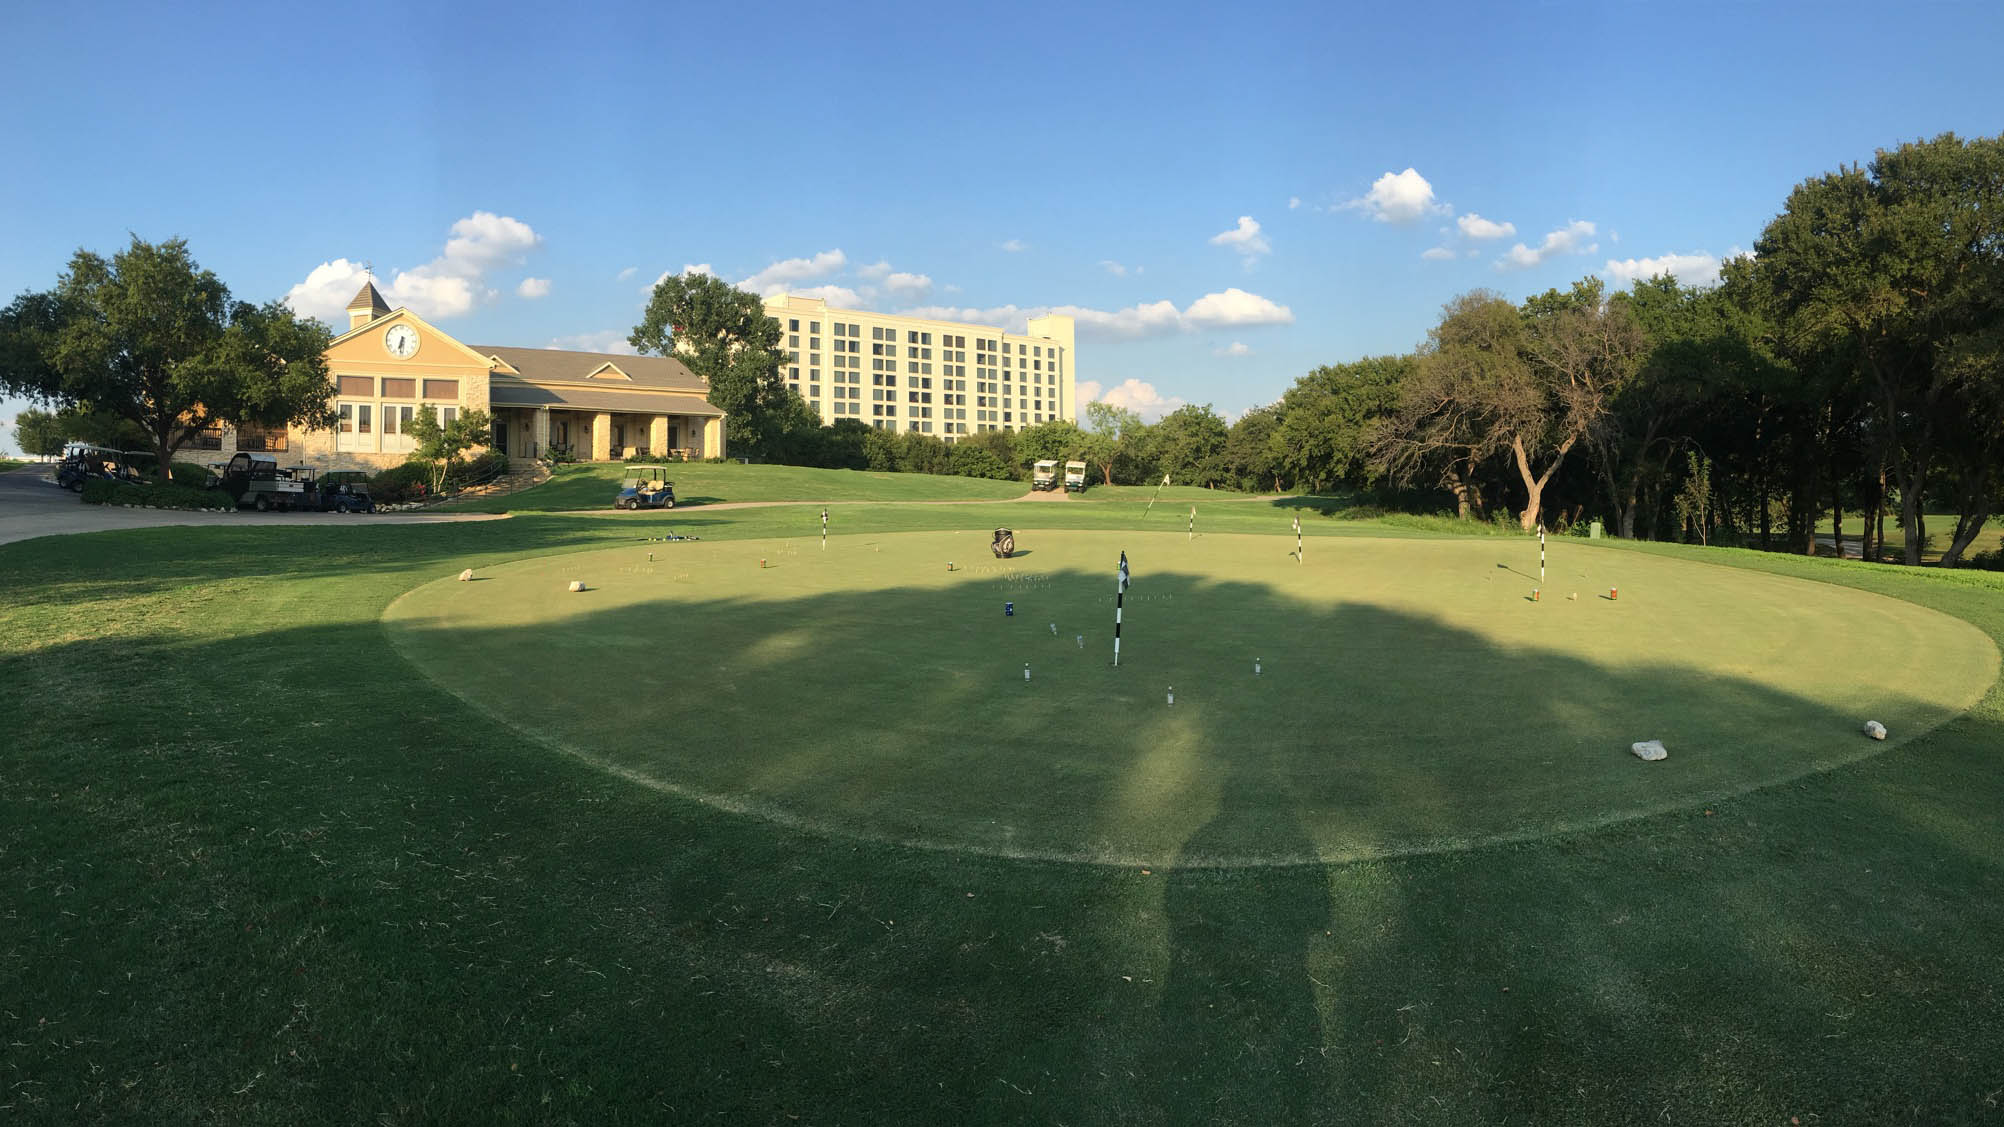 The practice area at The Golf Club at Champions Circle